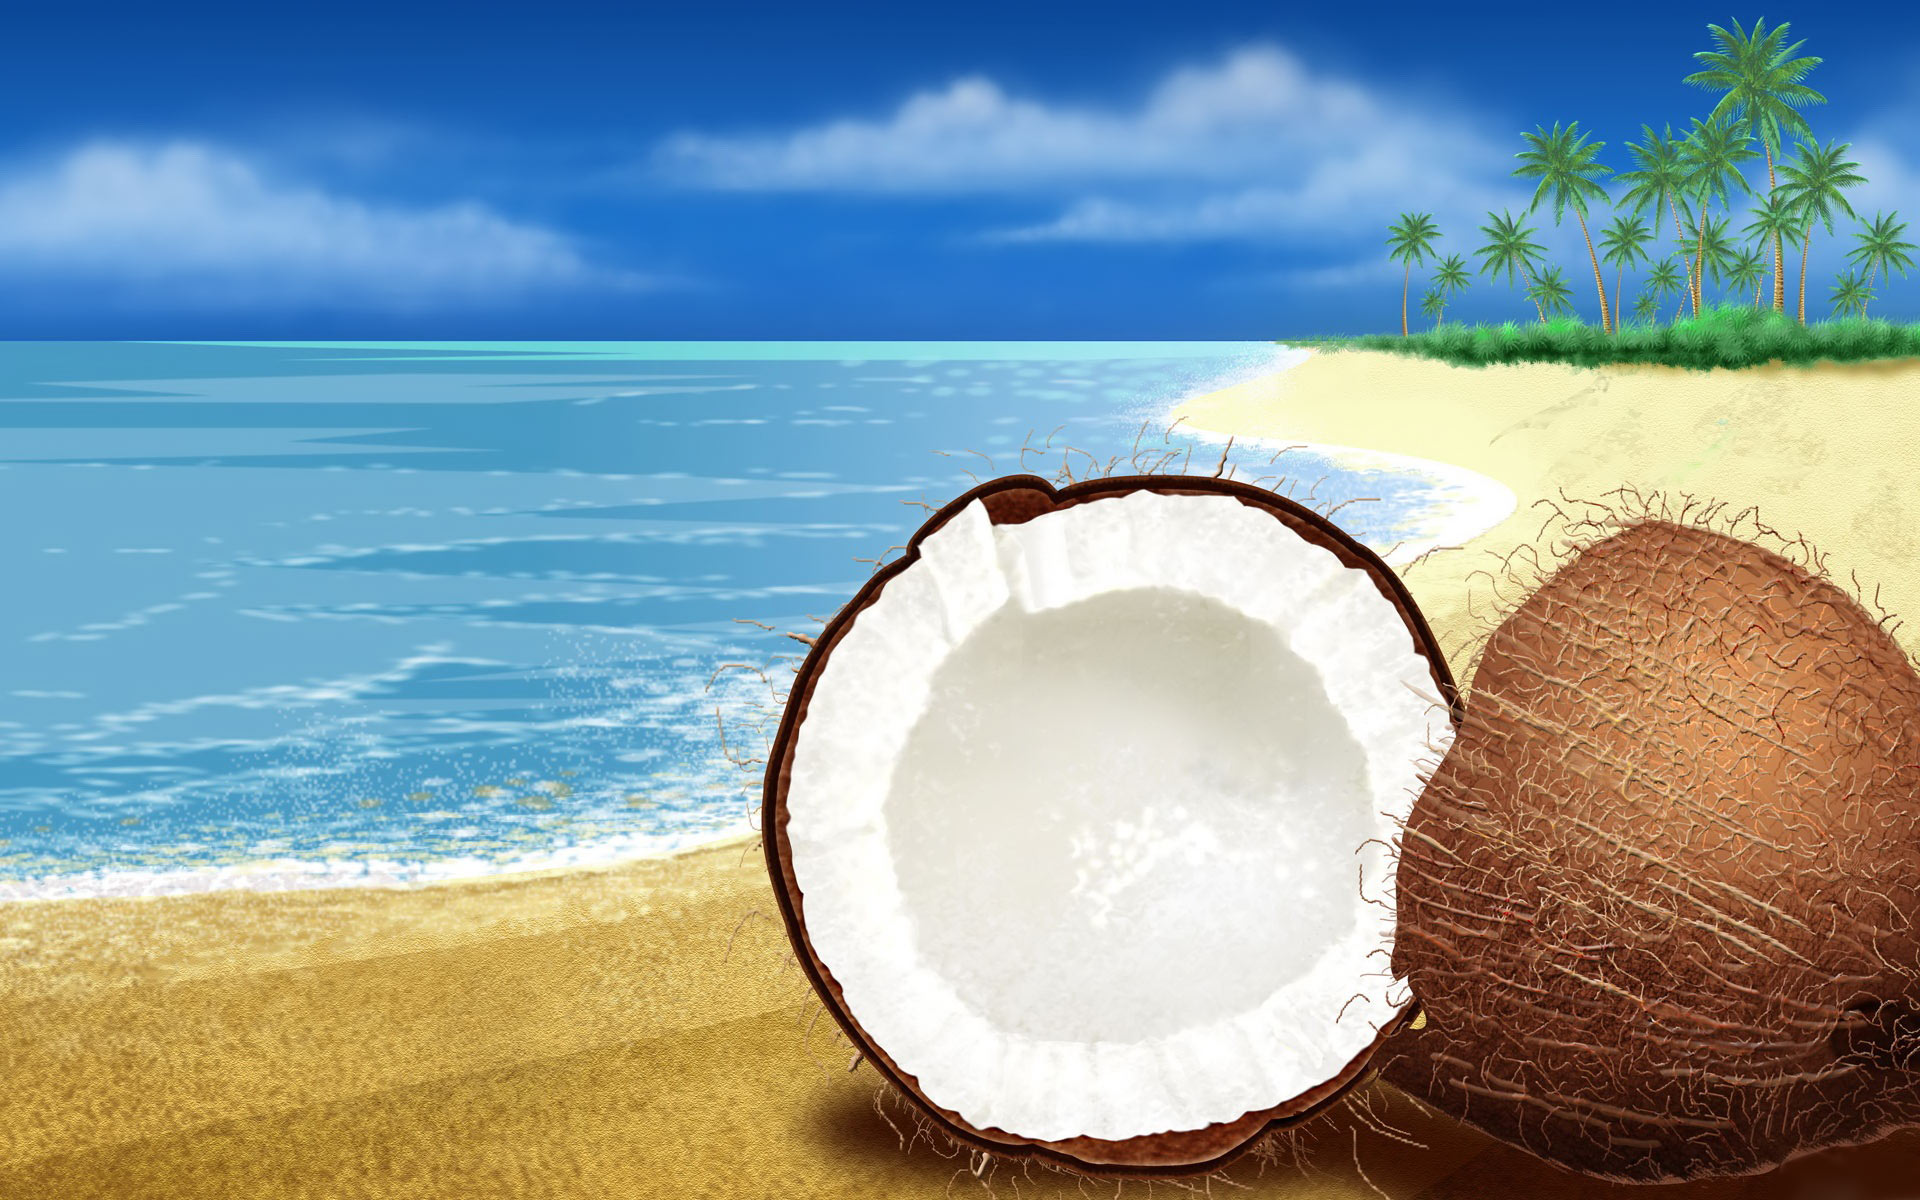 Beach free windows 7 backgrounds | High Quality Wallpapers,Wallpaper ...